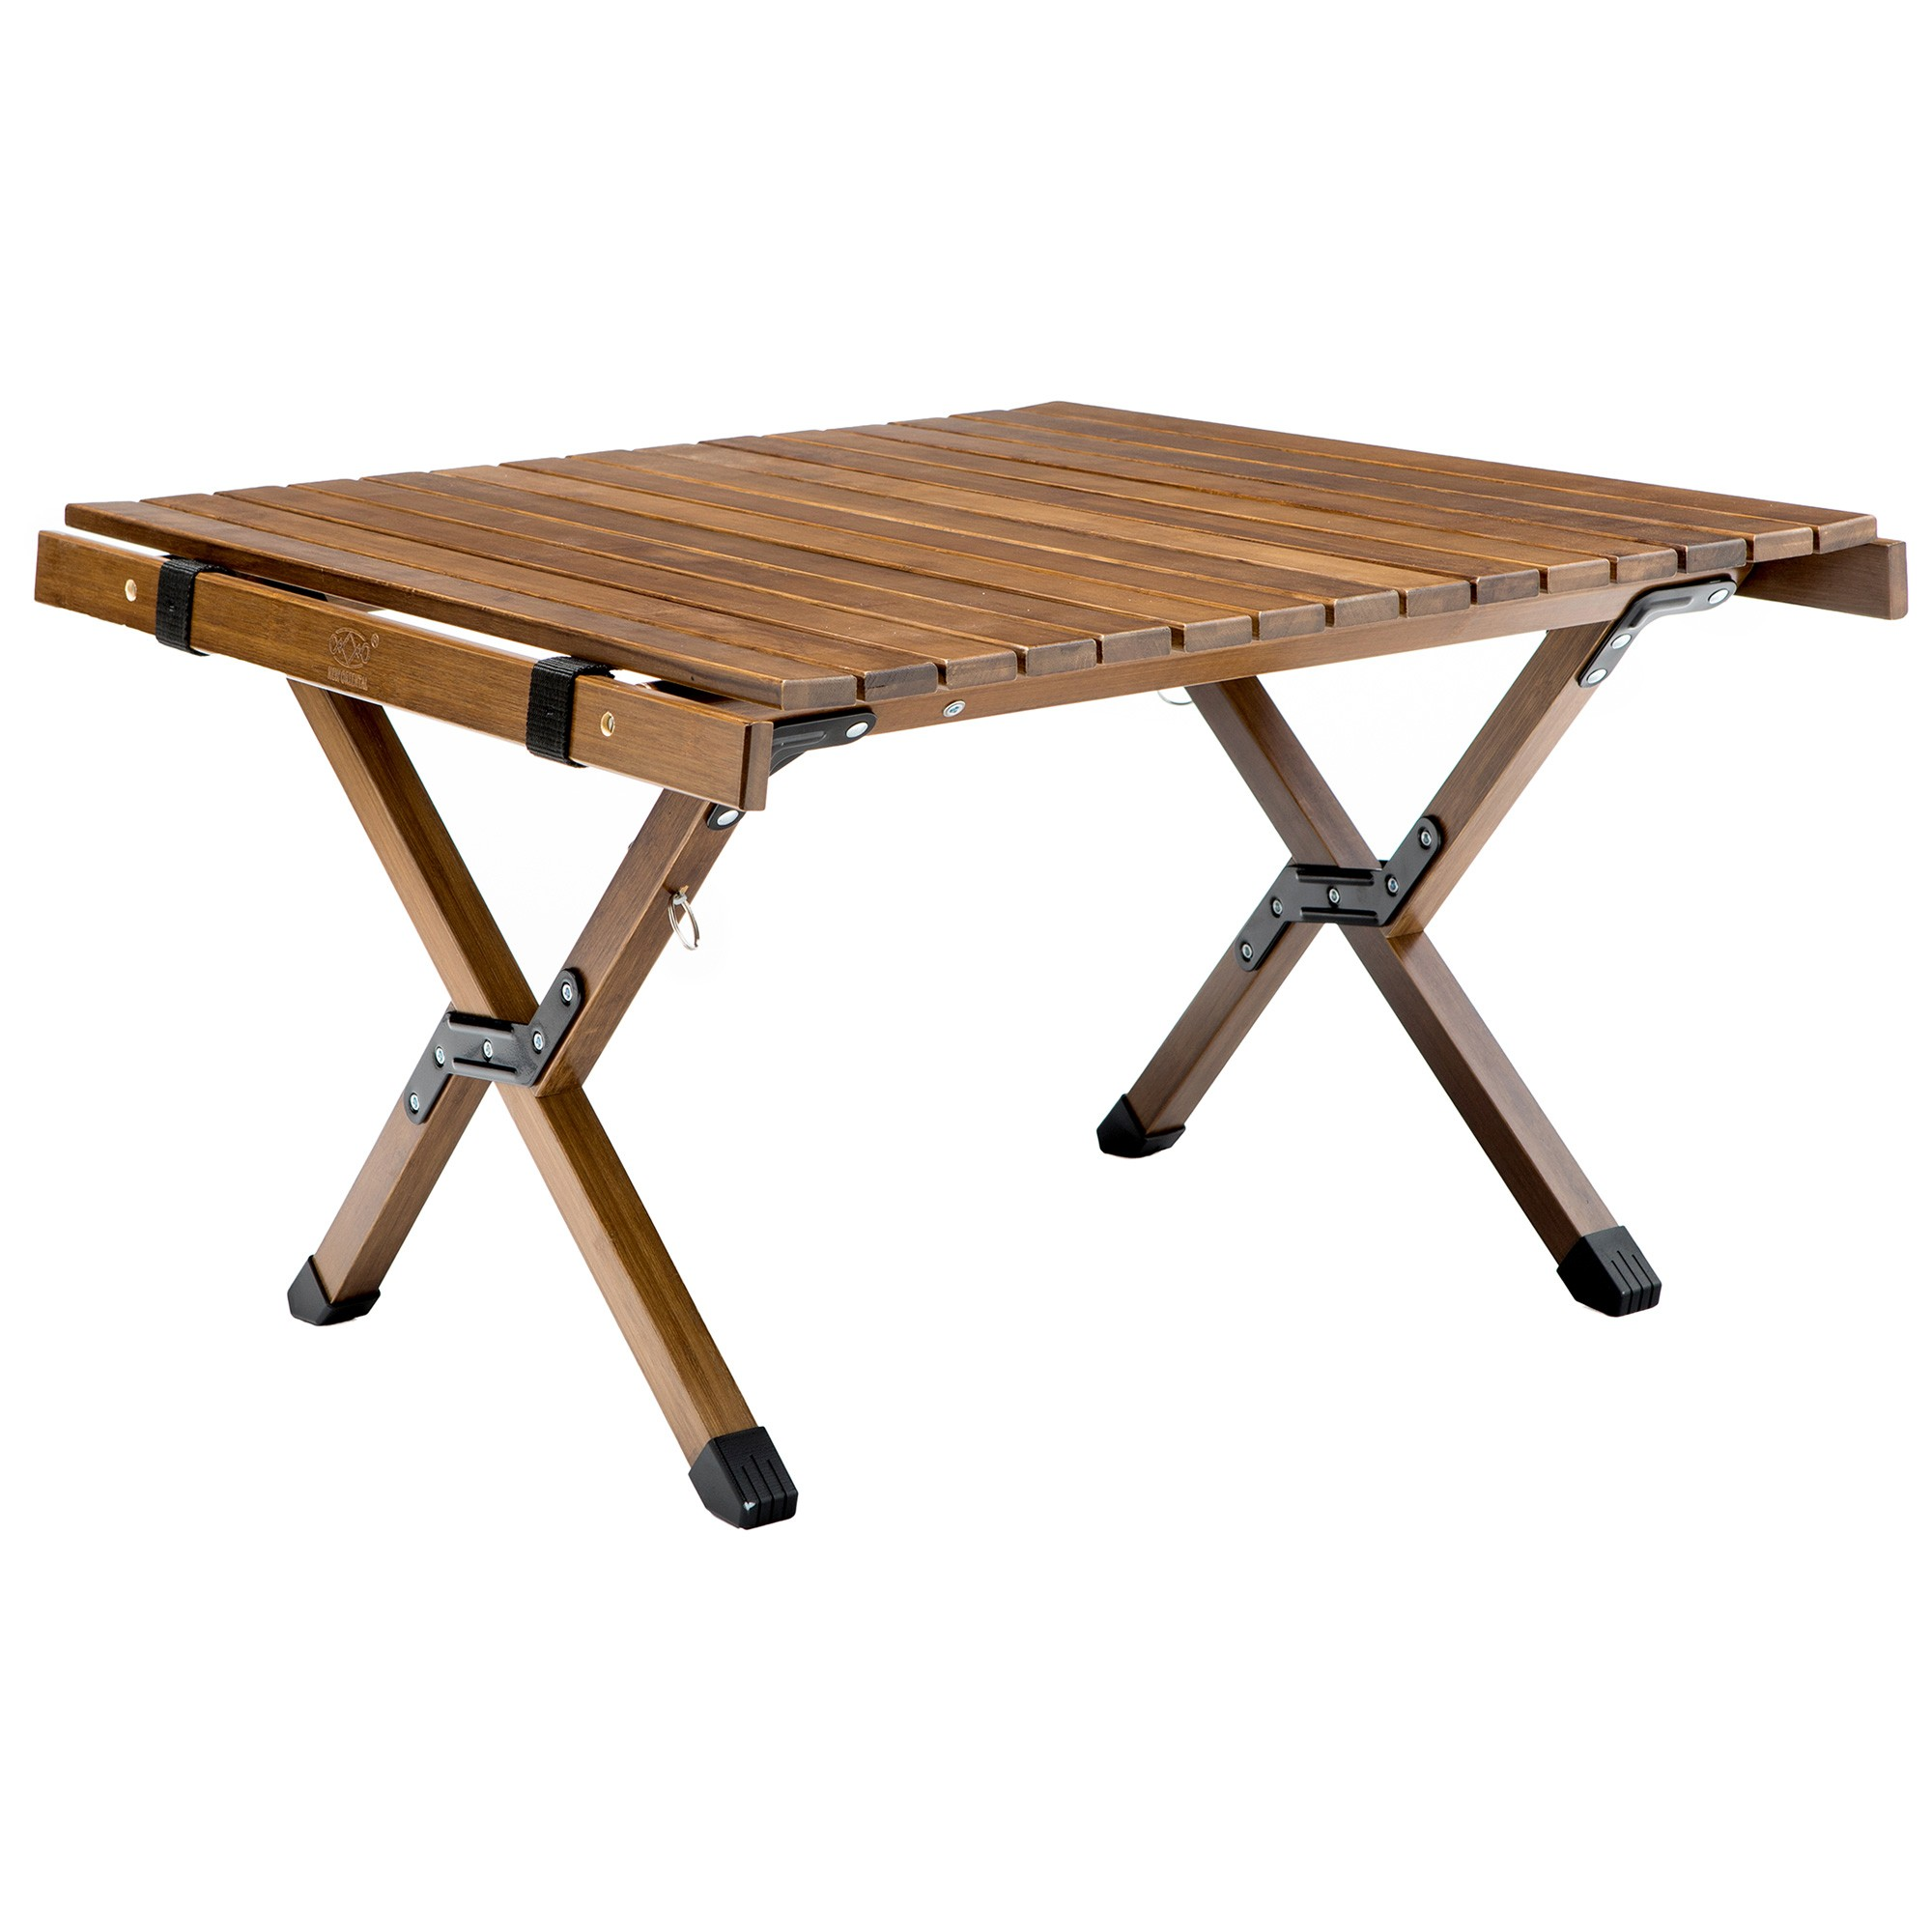 Longster Foldable Outdoor Camp Table, 60cm